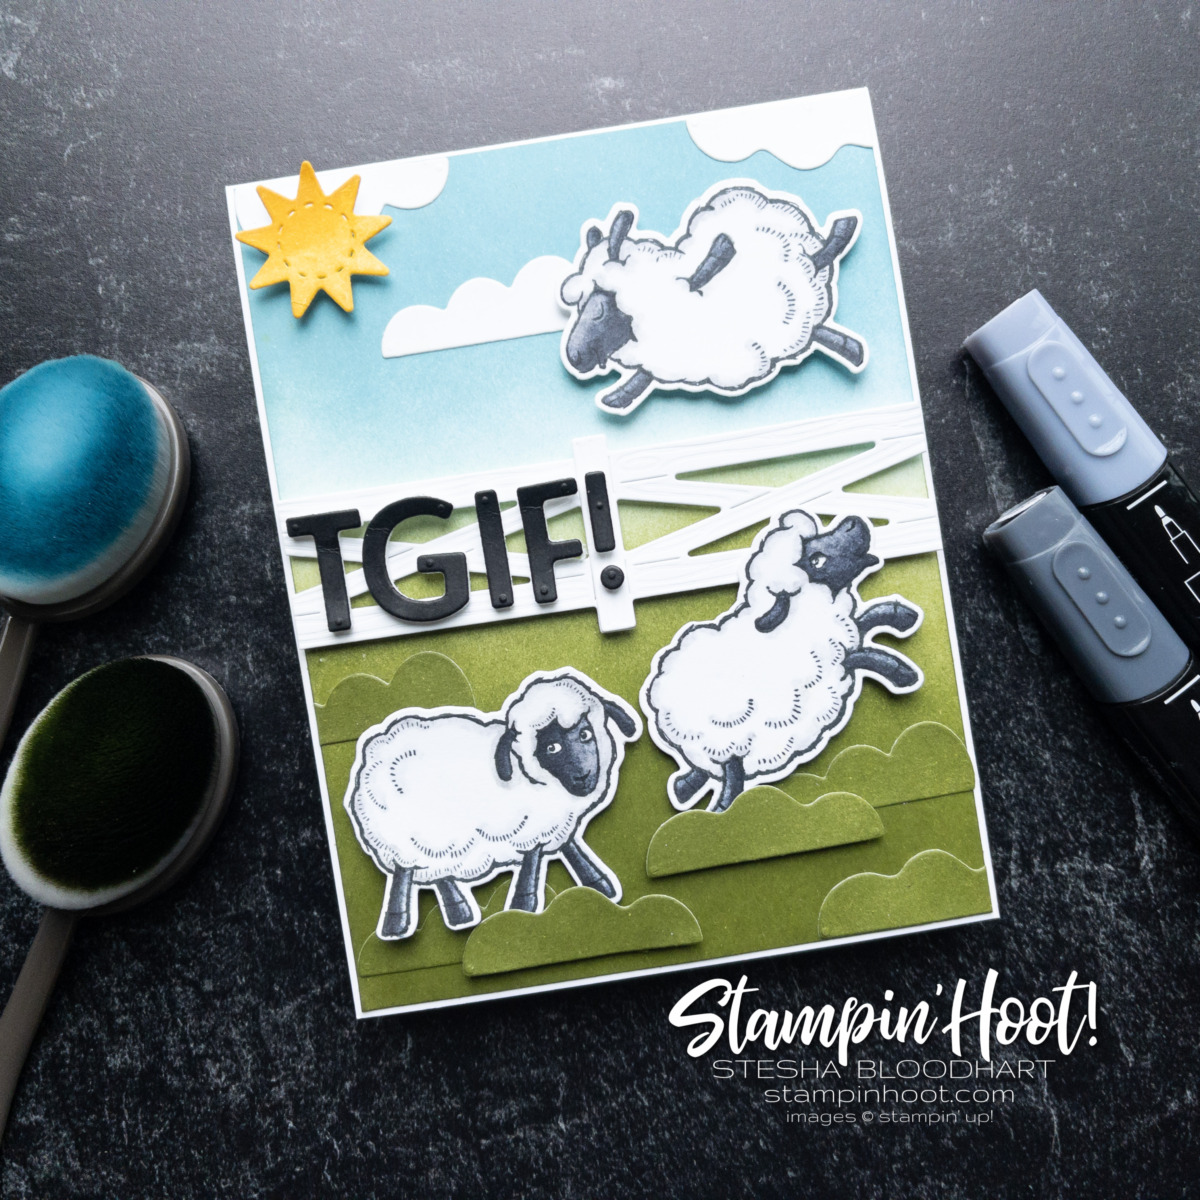 Create this card with the Counting Sheep Stamp Set and Sheep Dies from Stampin' Up! Earn them FREE. Stesha Bloodhart, Stampin' Hoot!